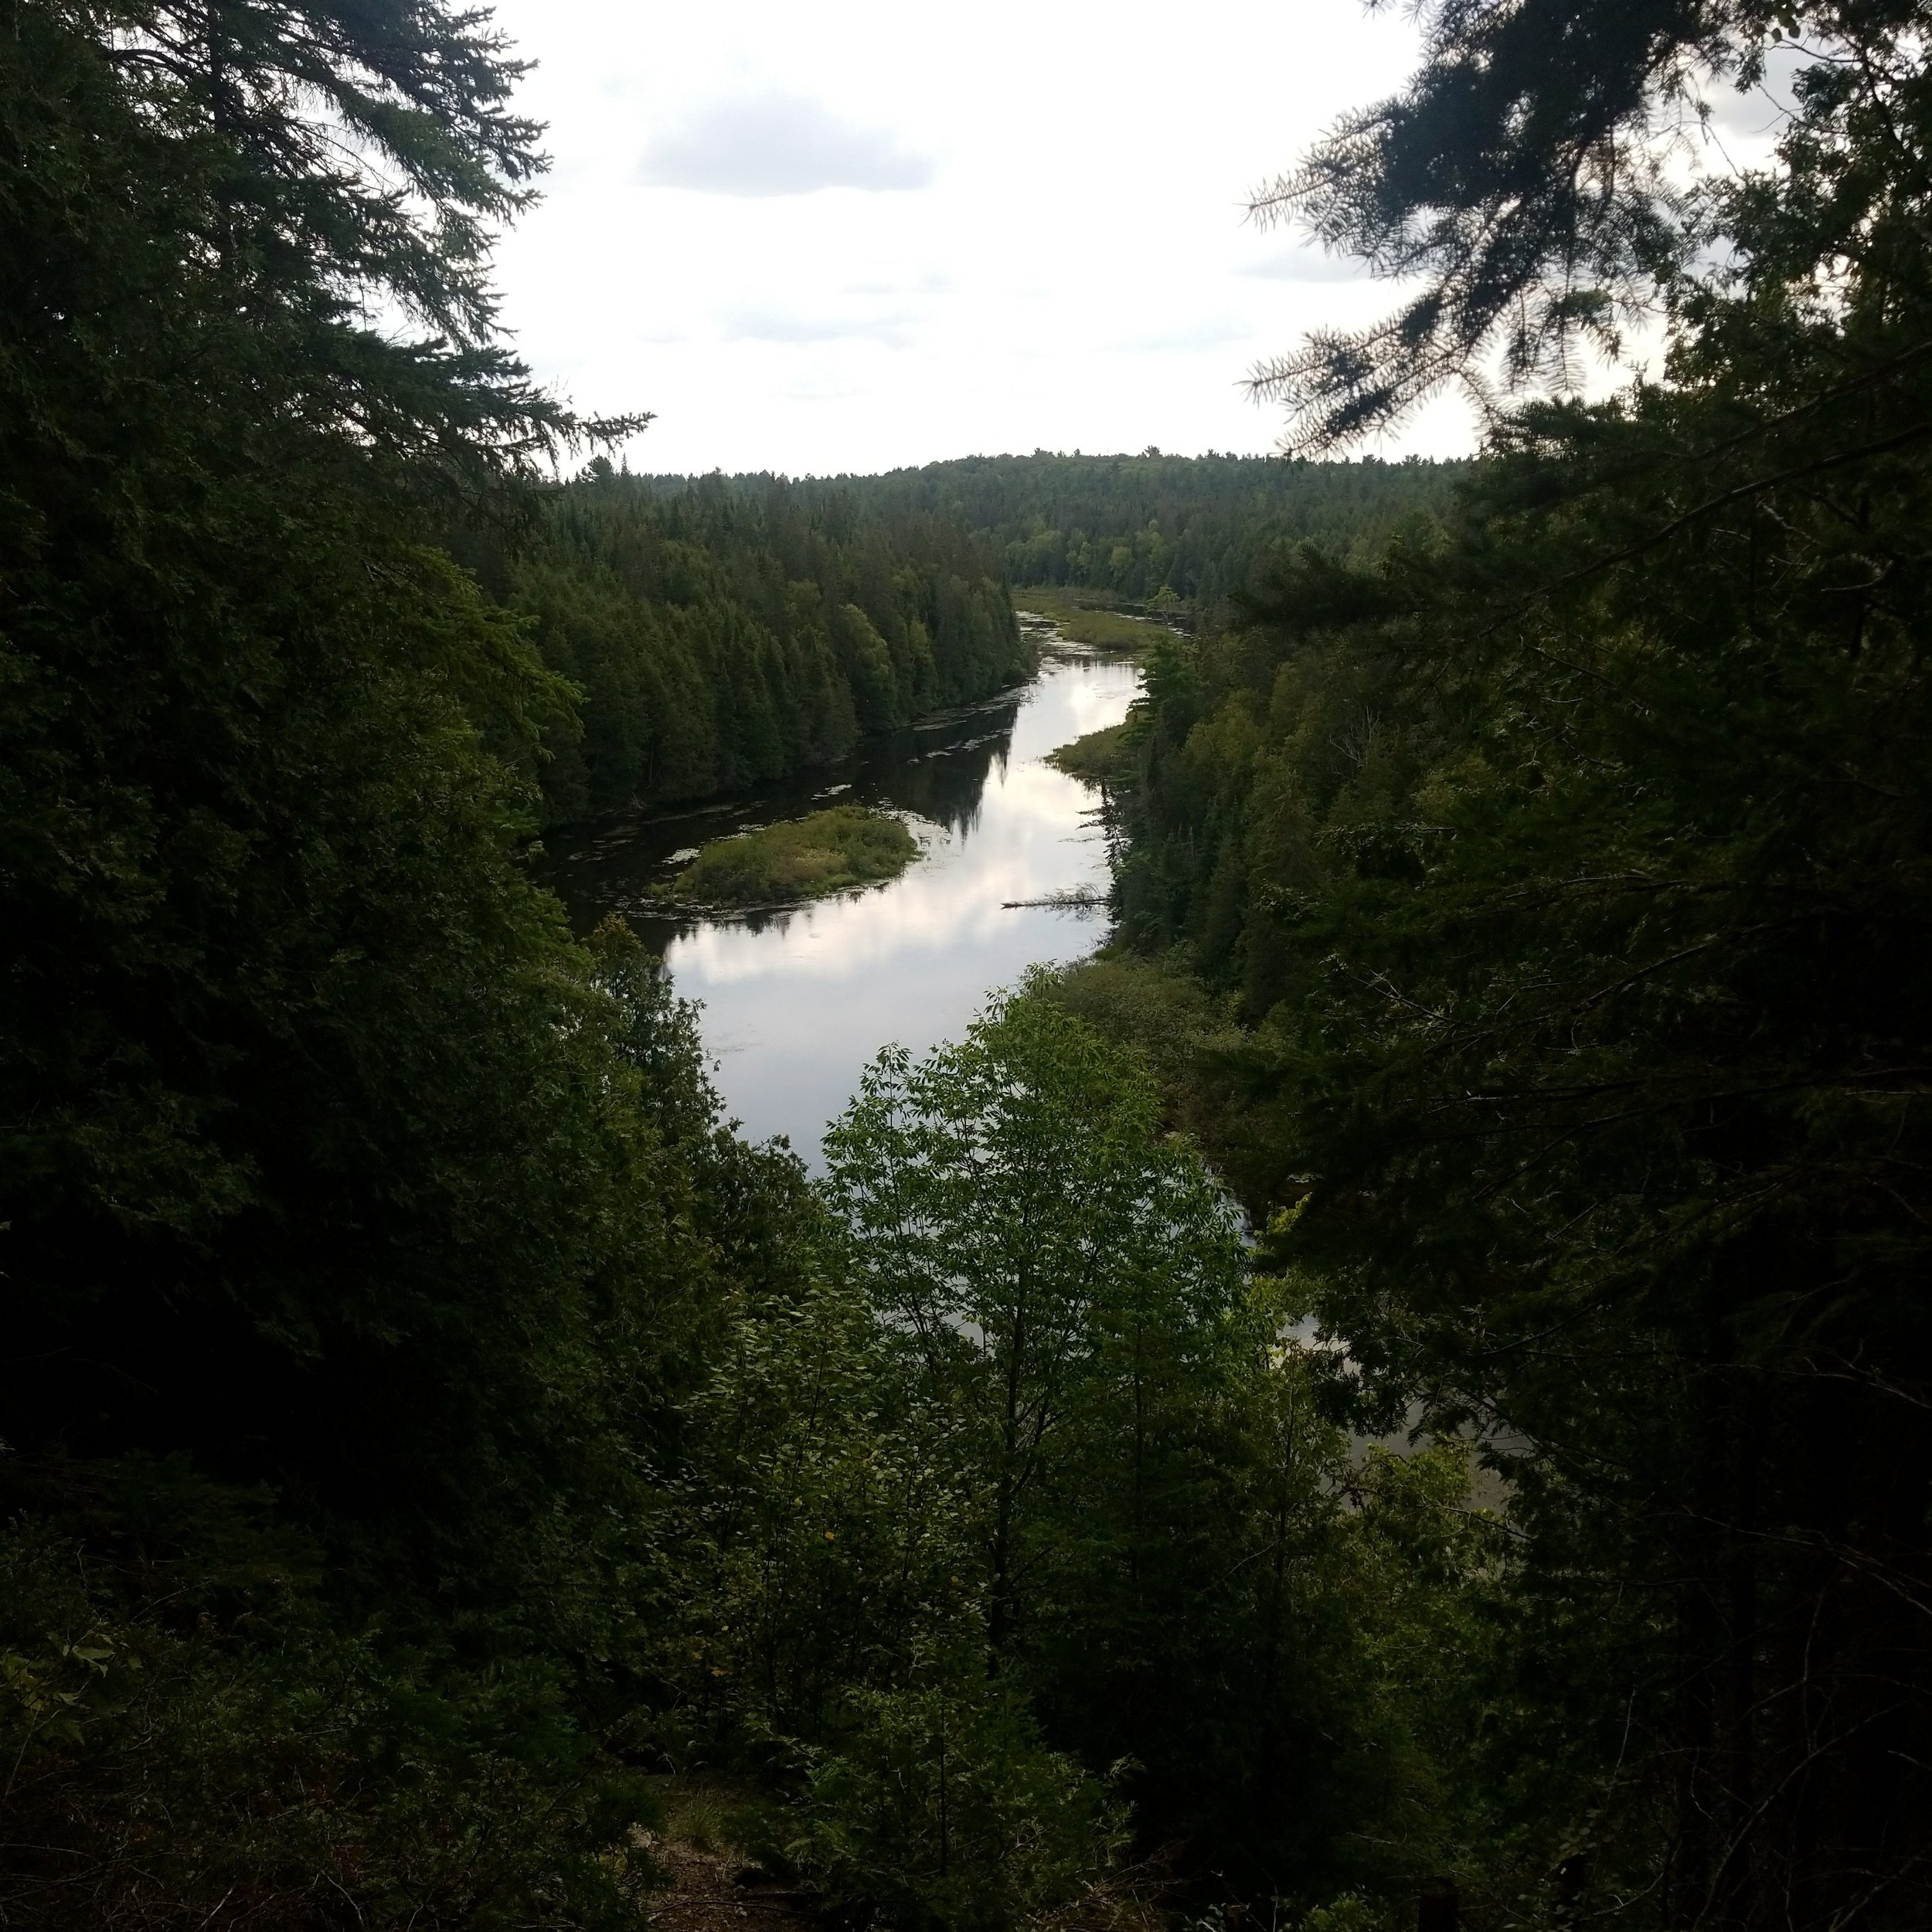 A view of the Indian River from one of the hiking trails